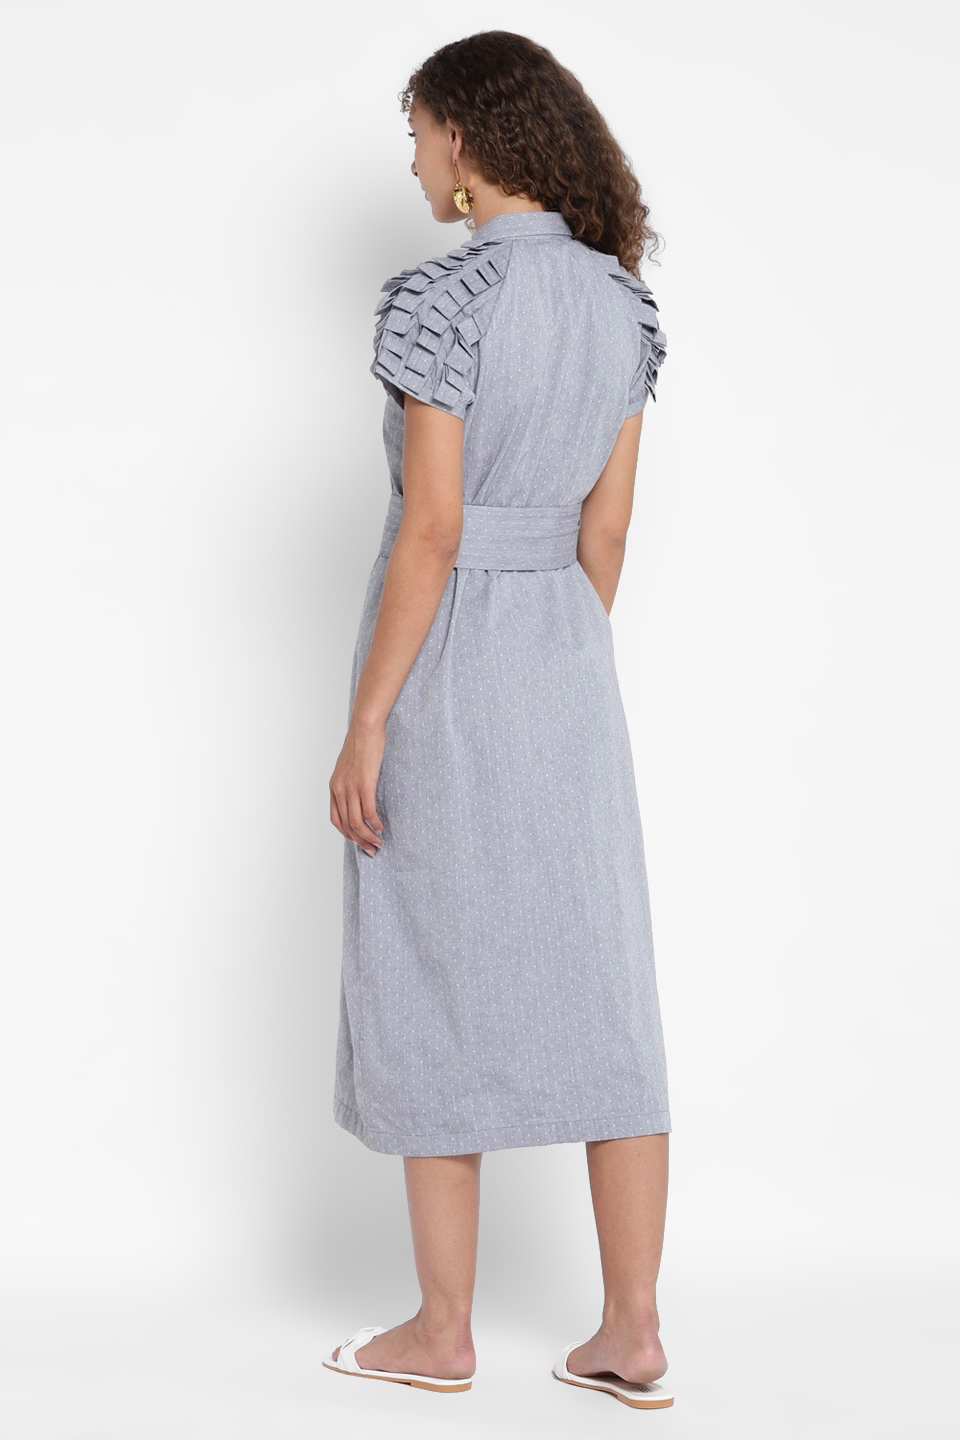 AMALDA DUSTY BLUE CALF LENGTH COLLARED SHIRT DRESS WITH SHORT SLEEVES AND BELT